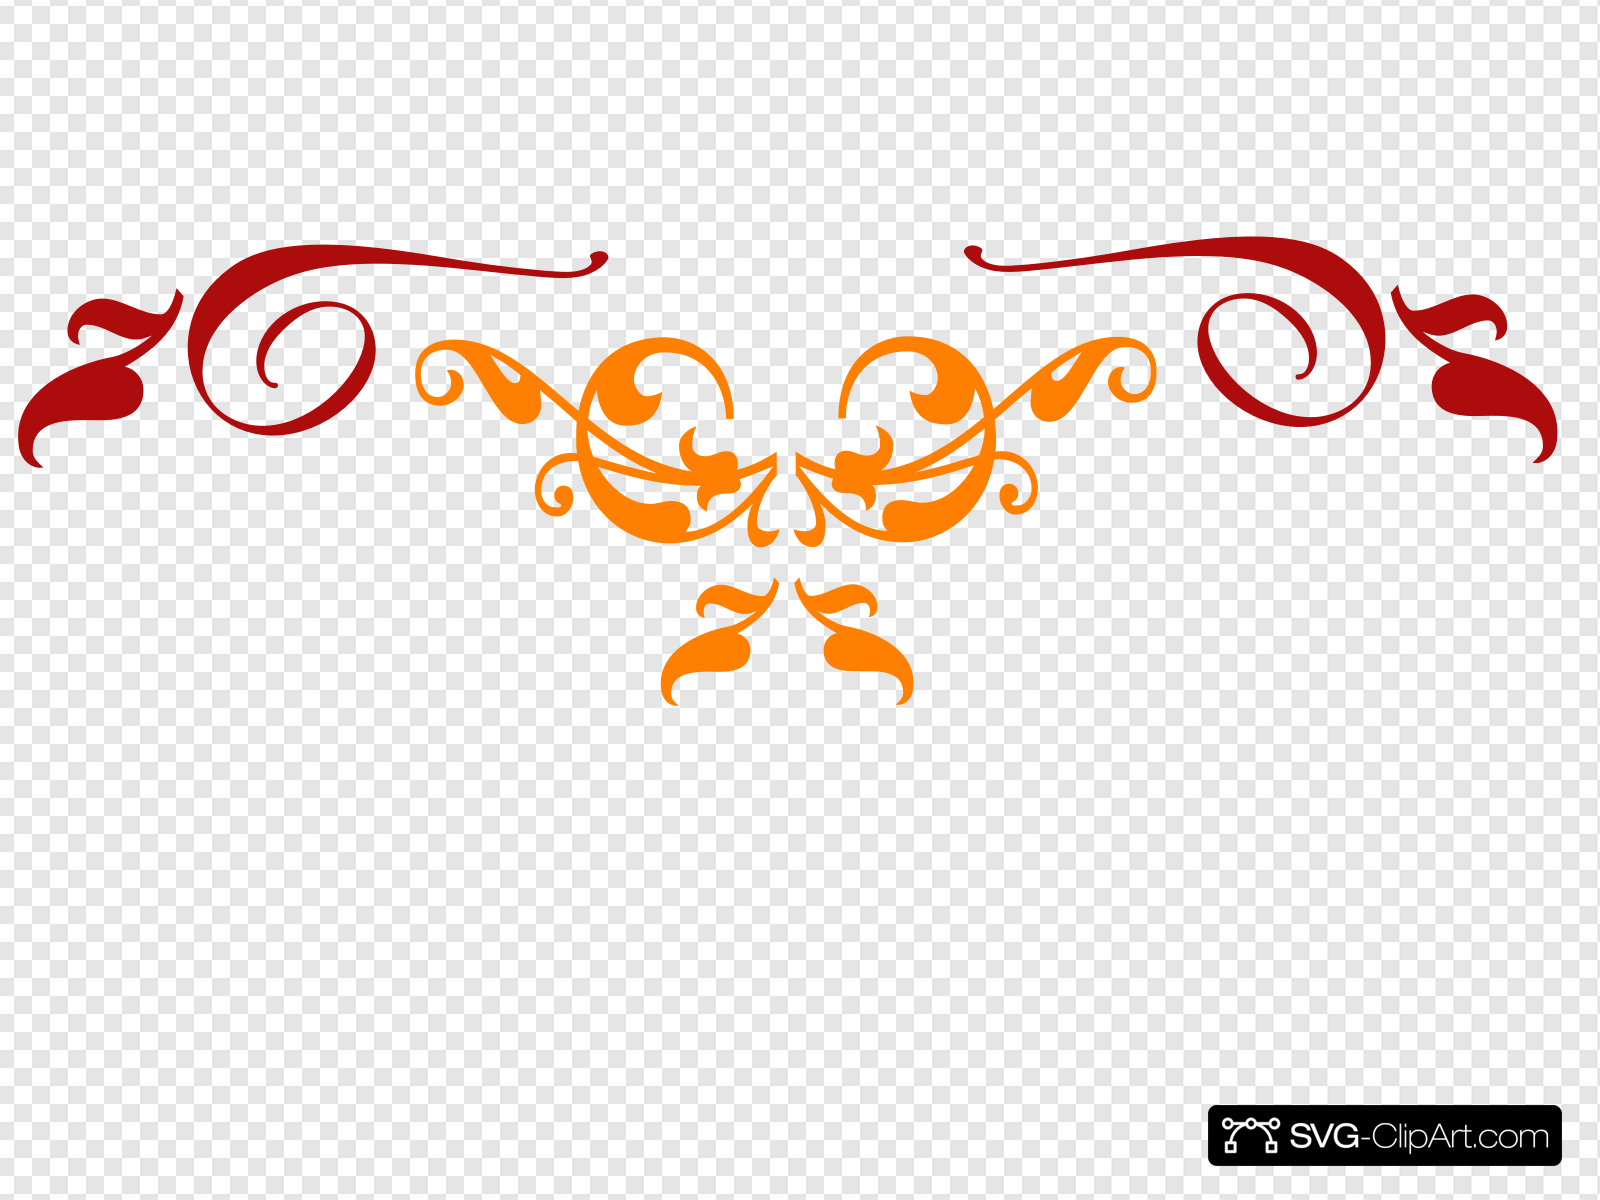 Orange Red Scroll 2 Clip art, Icon and SVG.